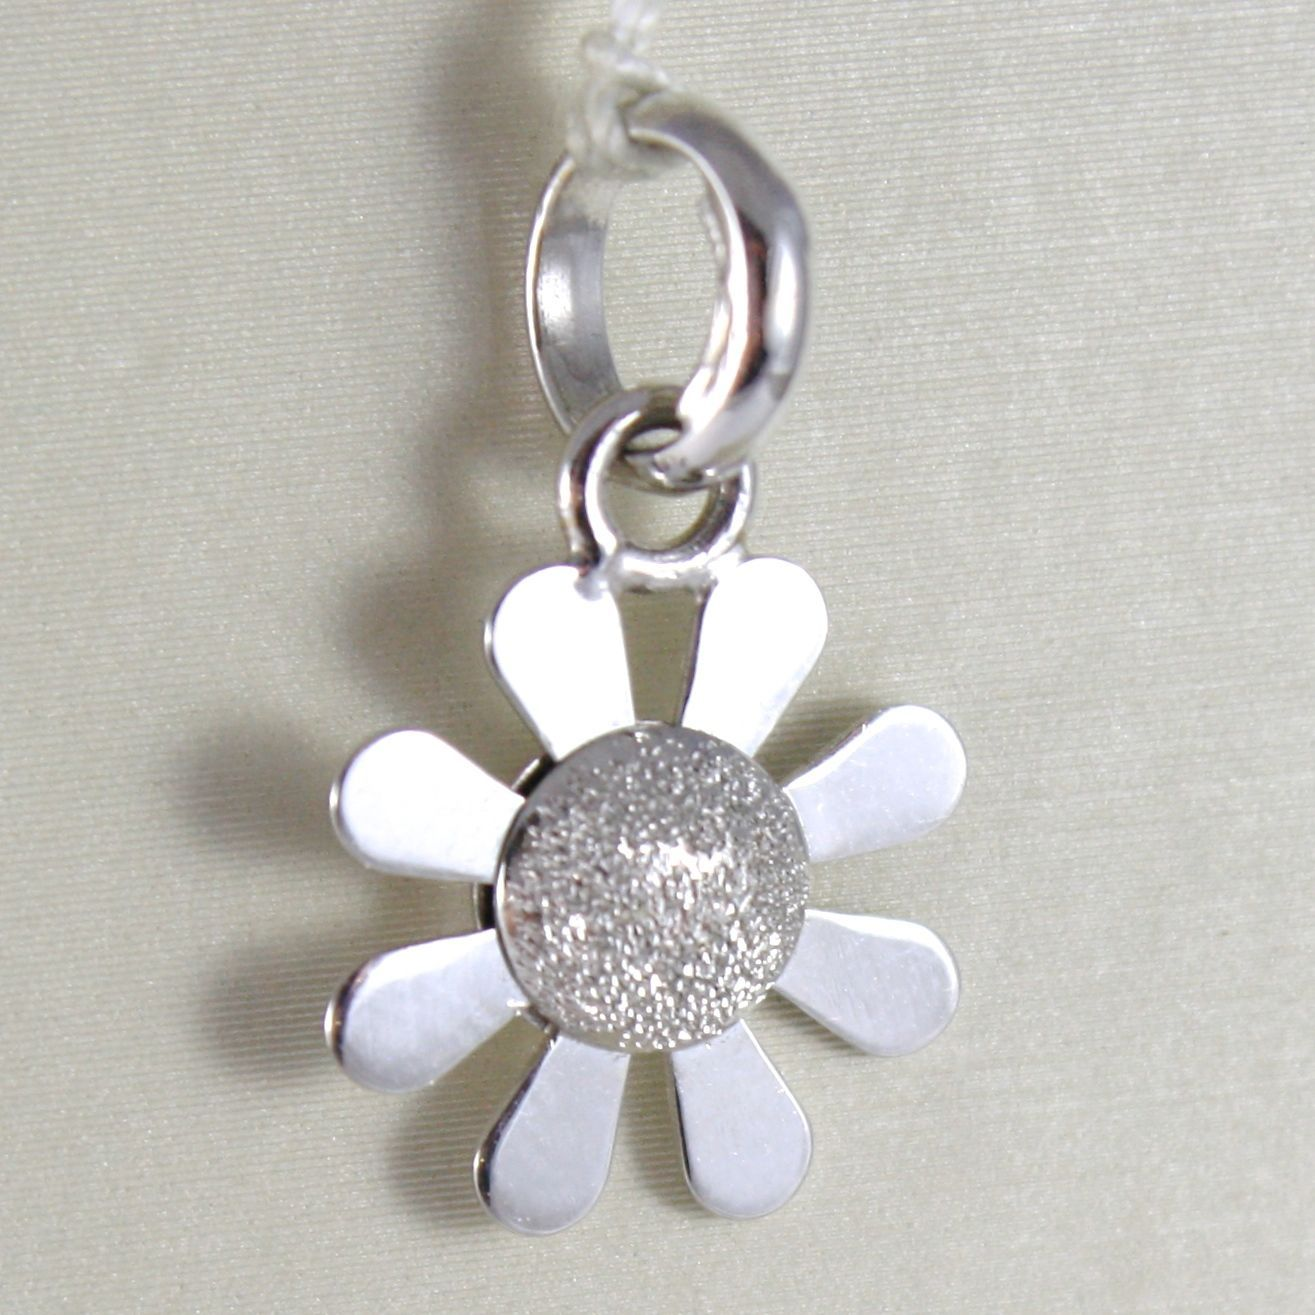 WHITE GOLD PENDANT 750 18K DAISY FLOWER PENDANT SATIN LONG 2 CM